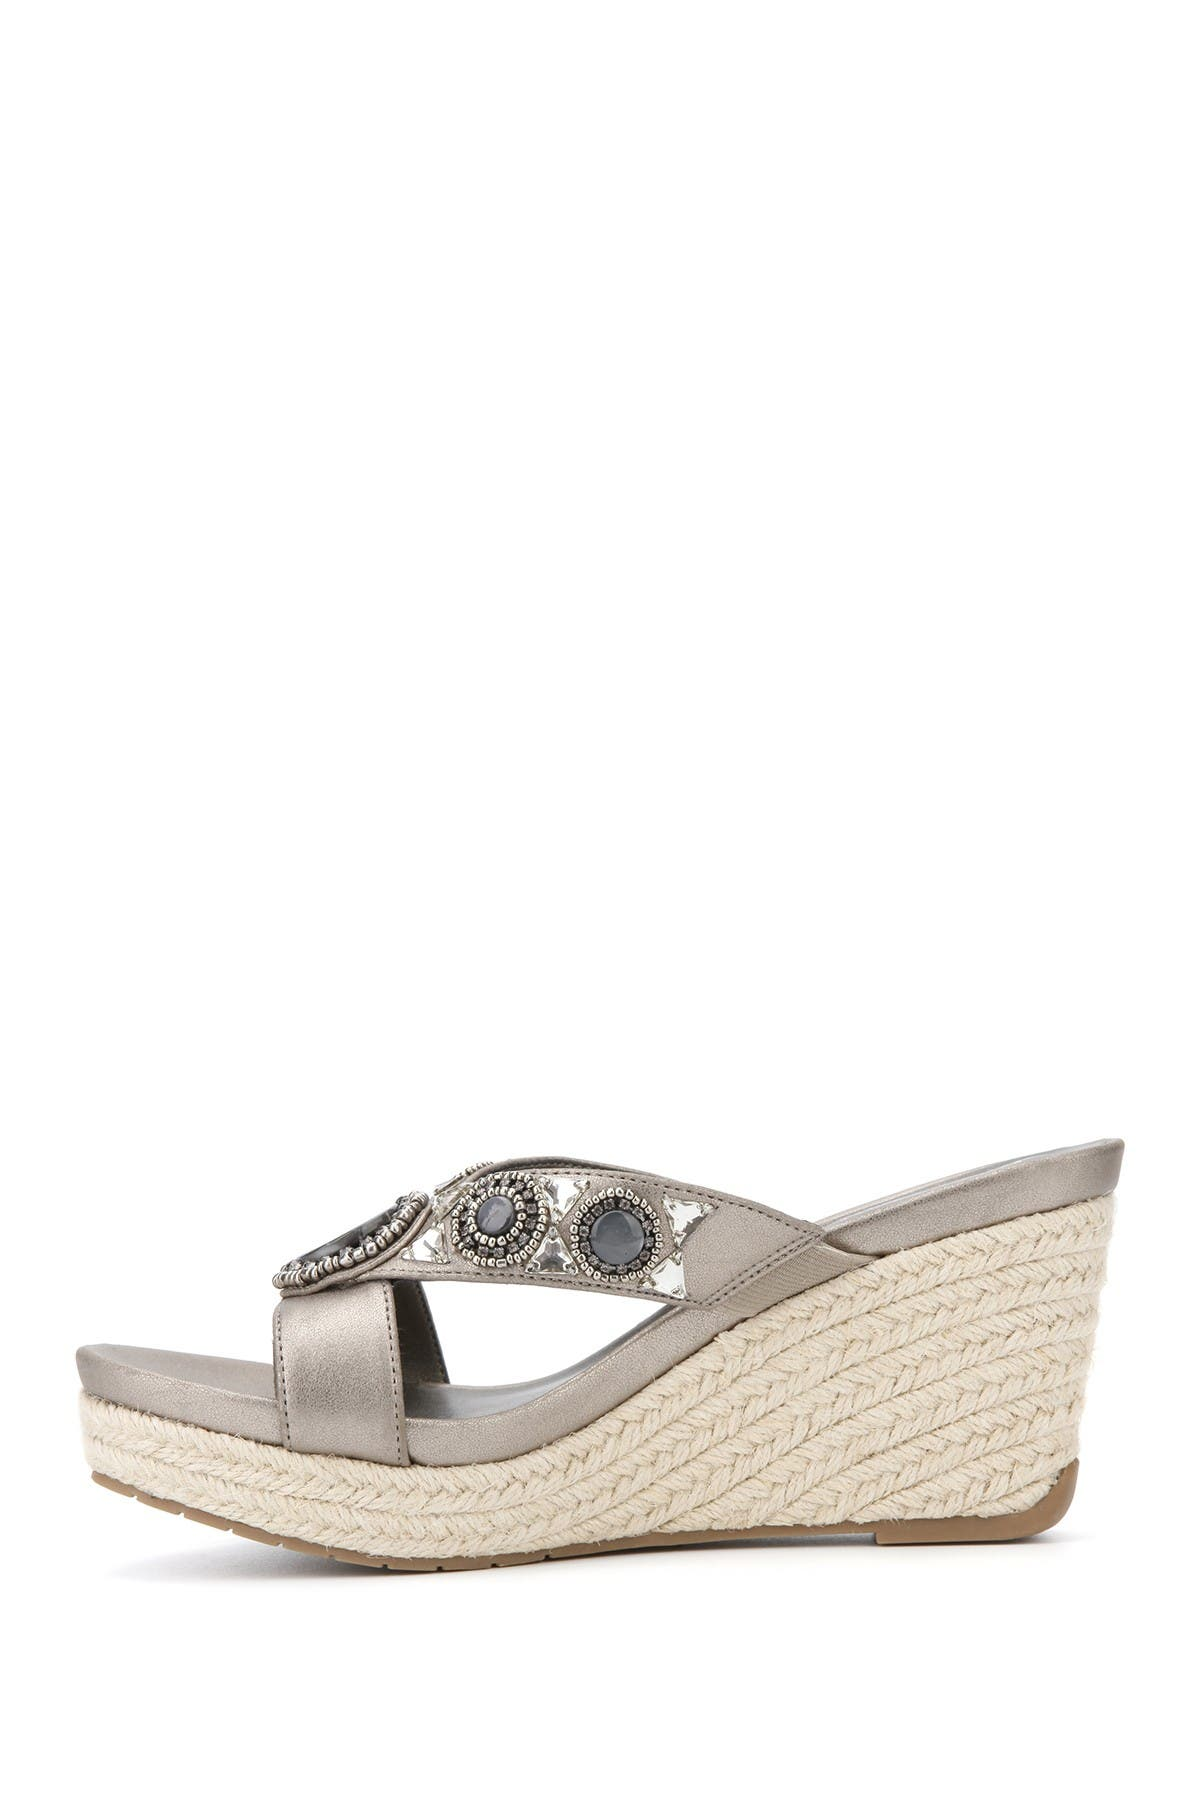 Kenneth Cole Card Glam Thong Toe Esparille In Pewter